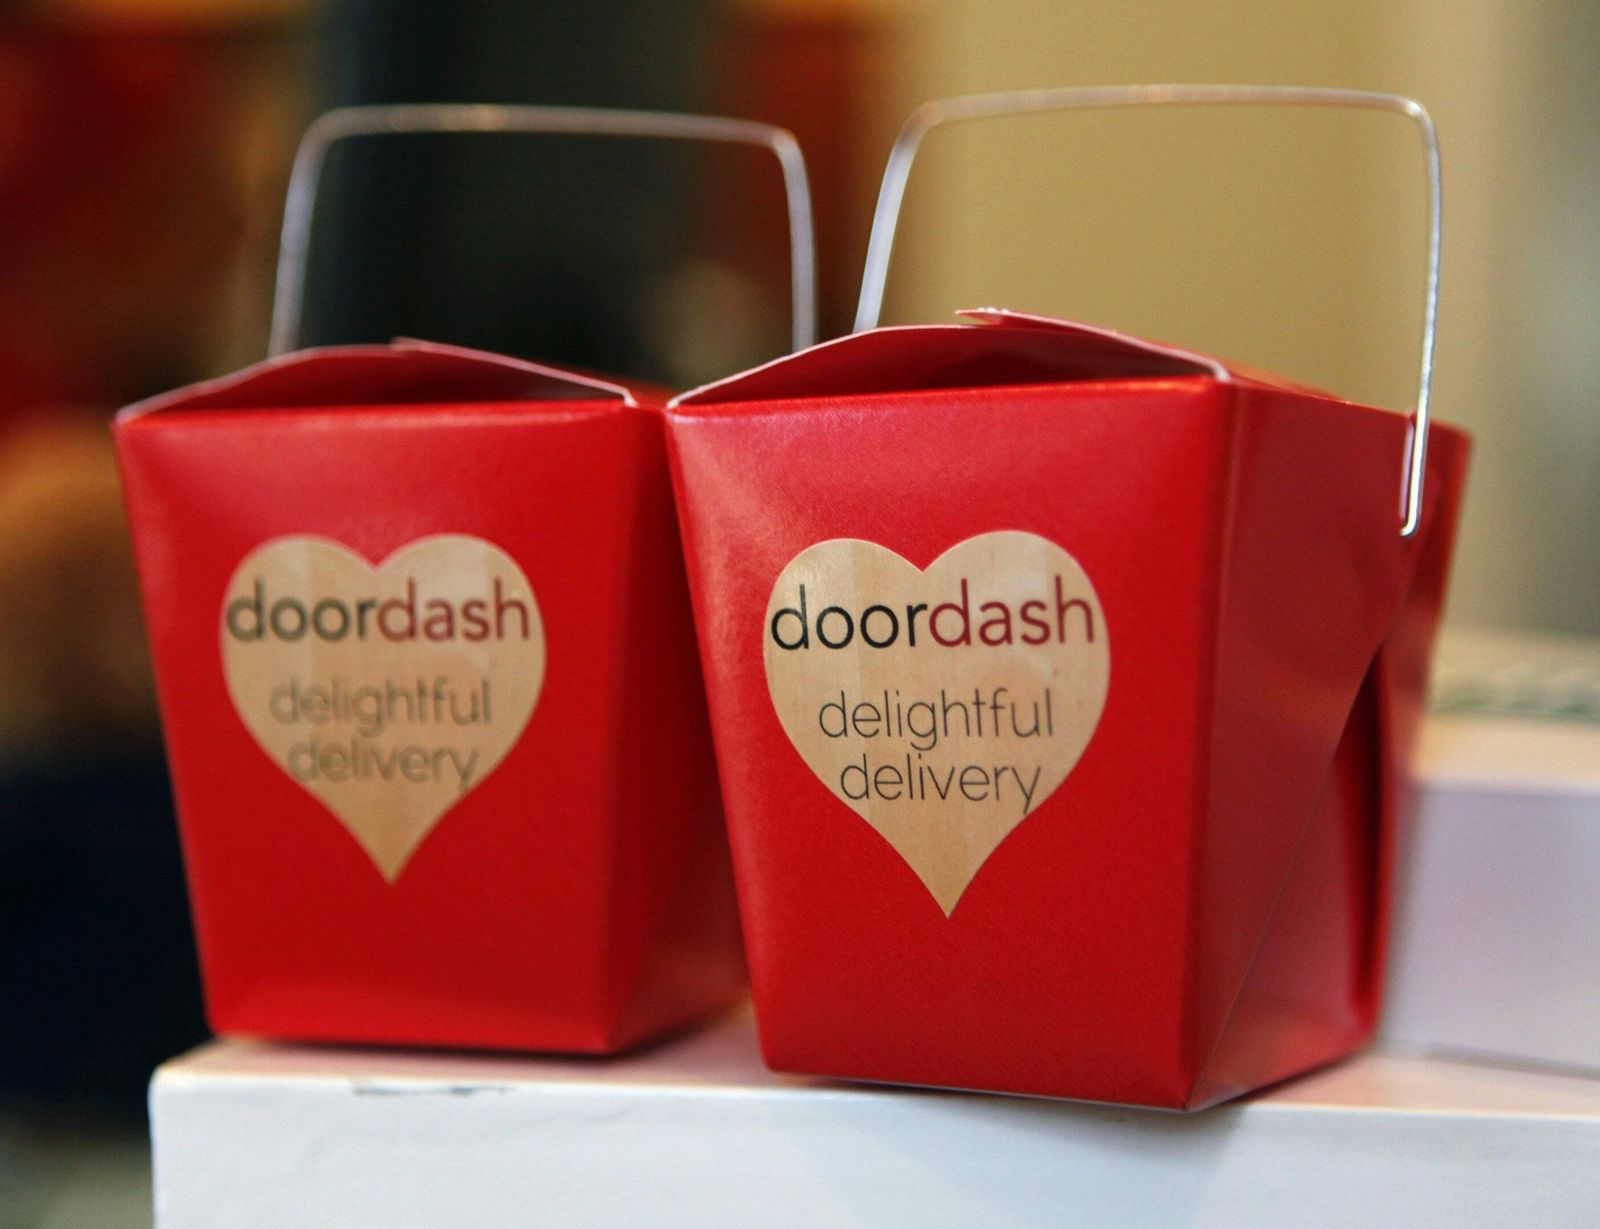 Aug 21 2013 Palo Alto CA USA Gift boxes for first time orders from DoorDash are featured in